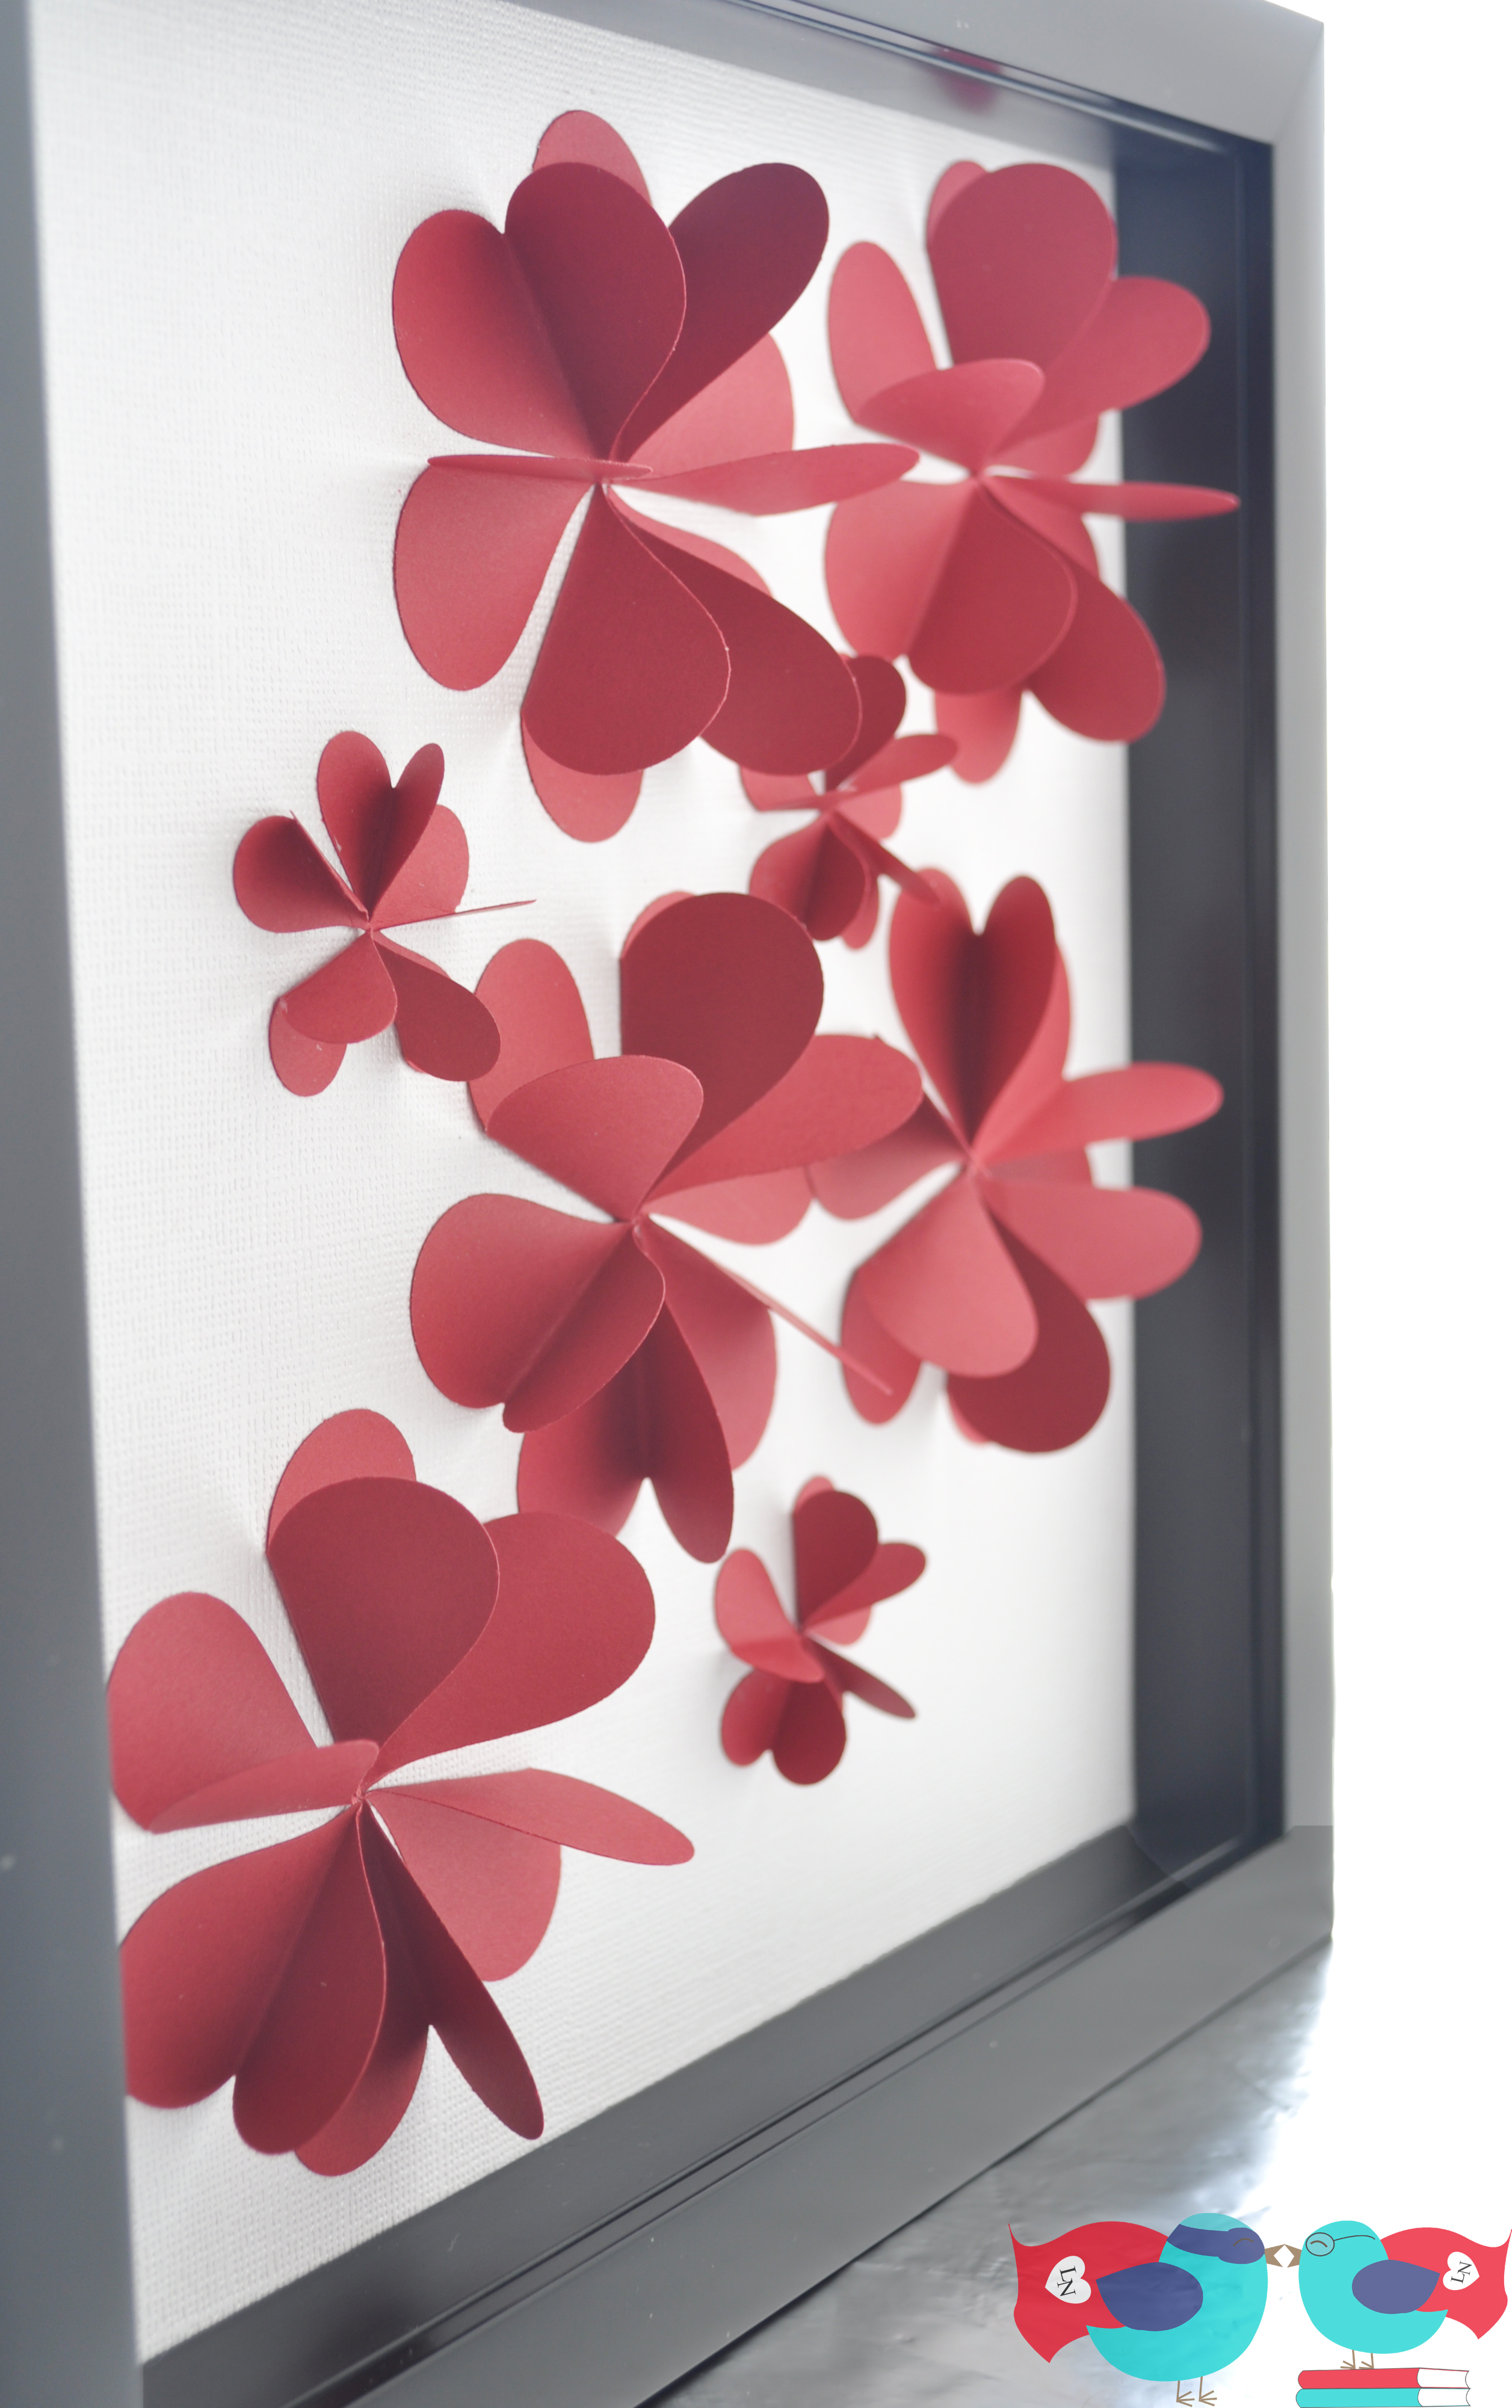 3d flower art using paper hearts the love nerds - How to make paper love hearts ...